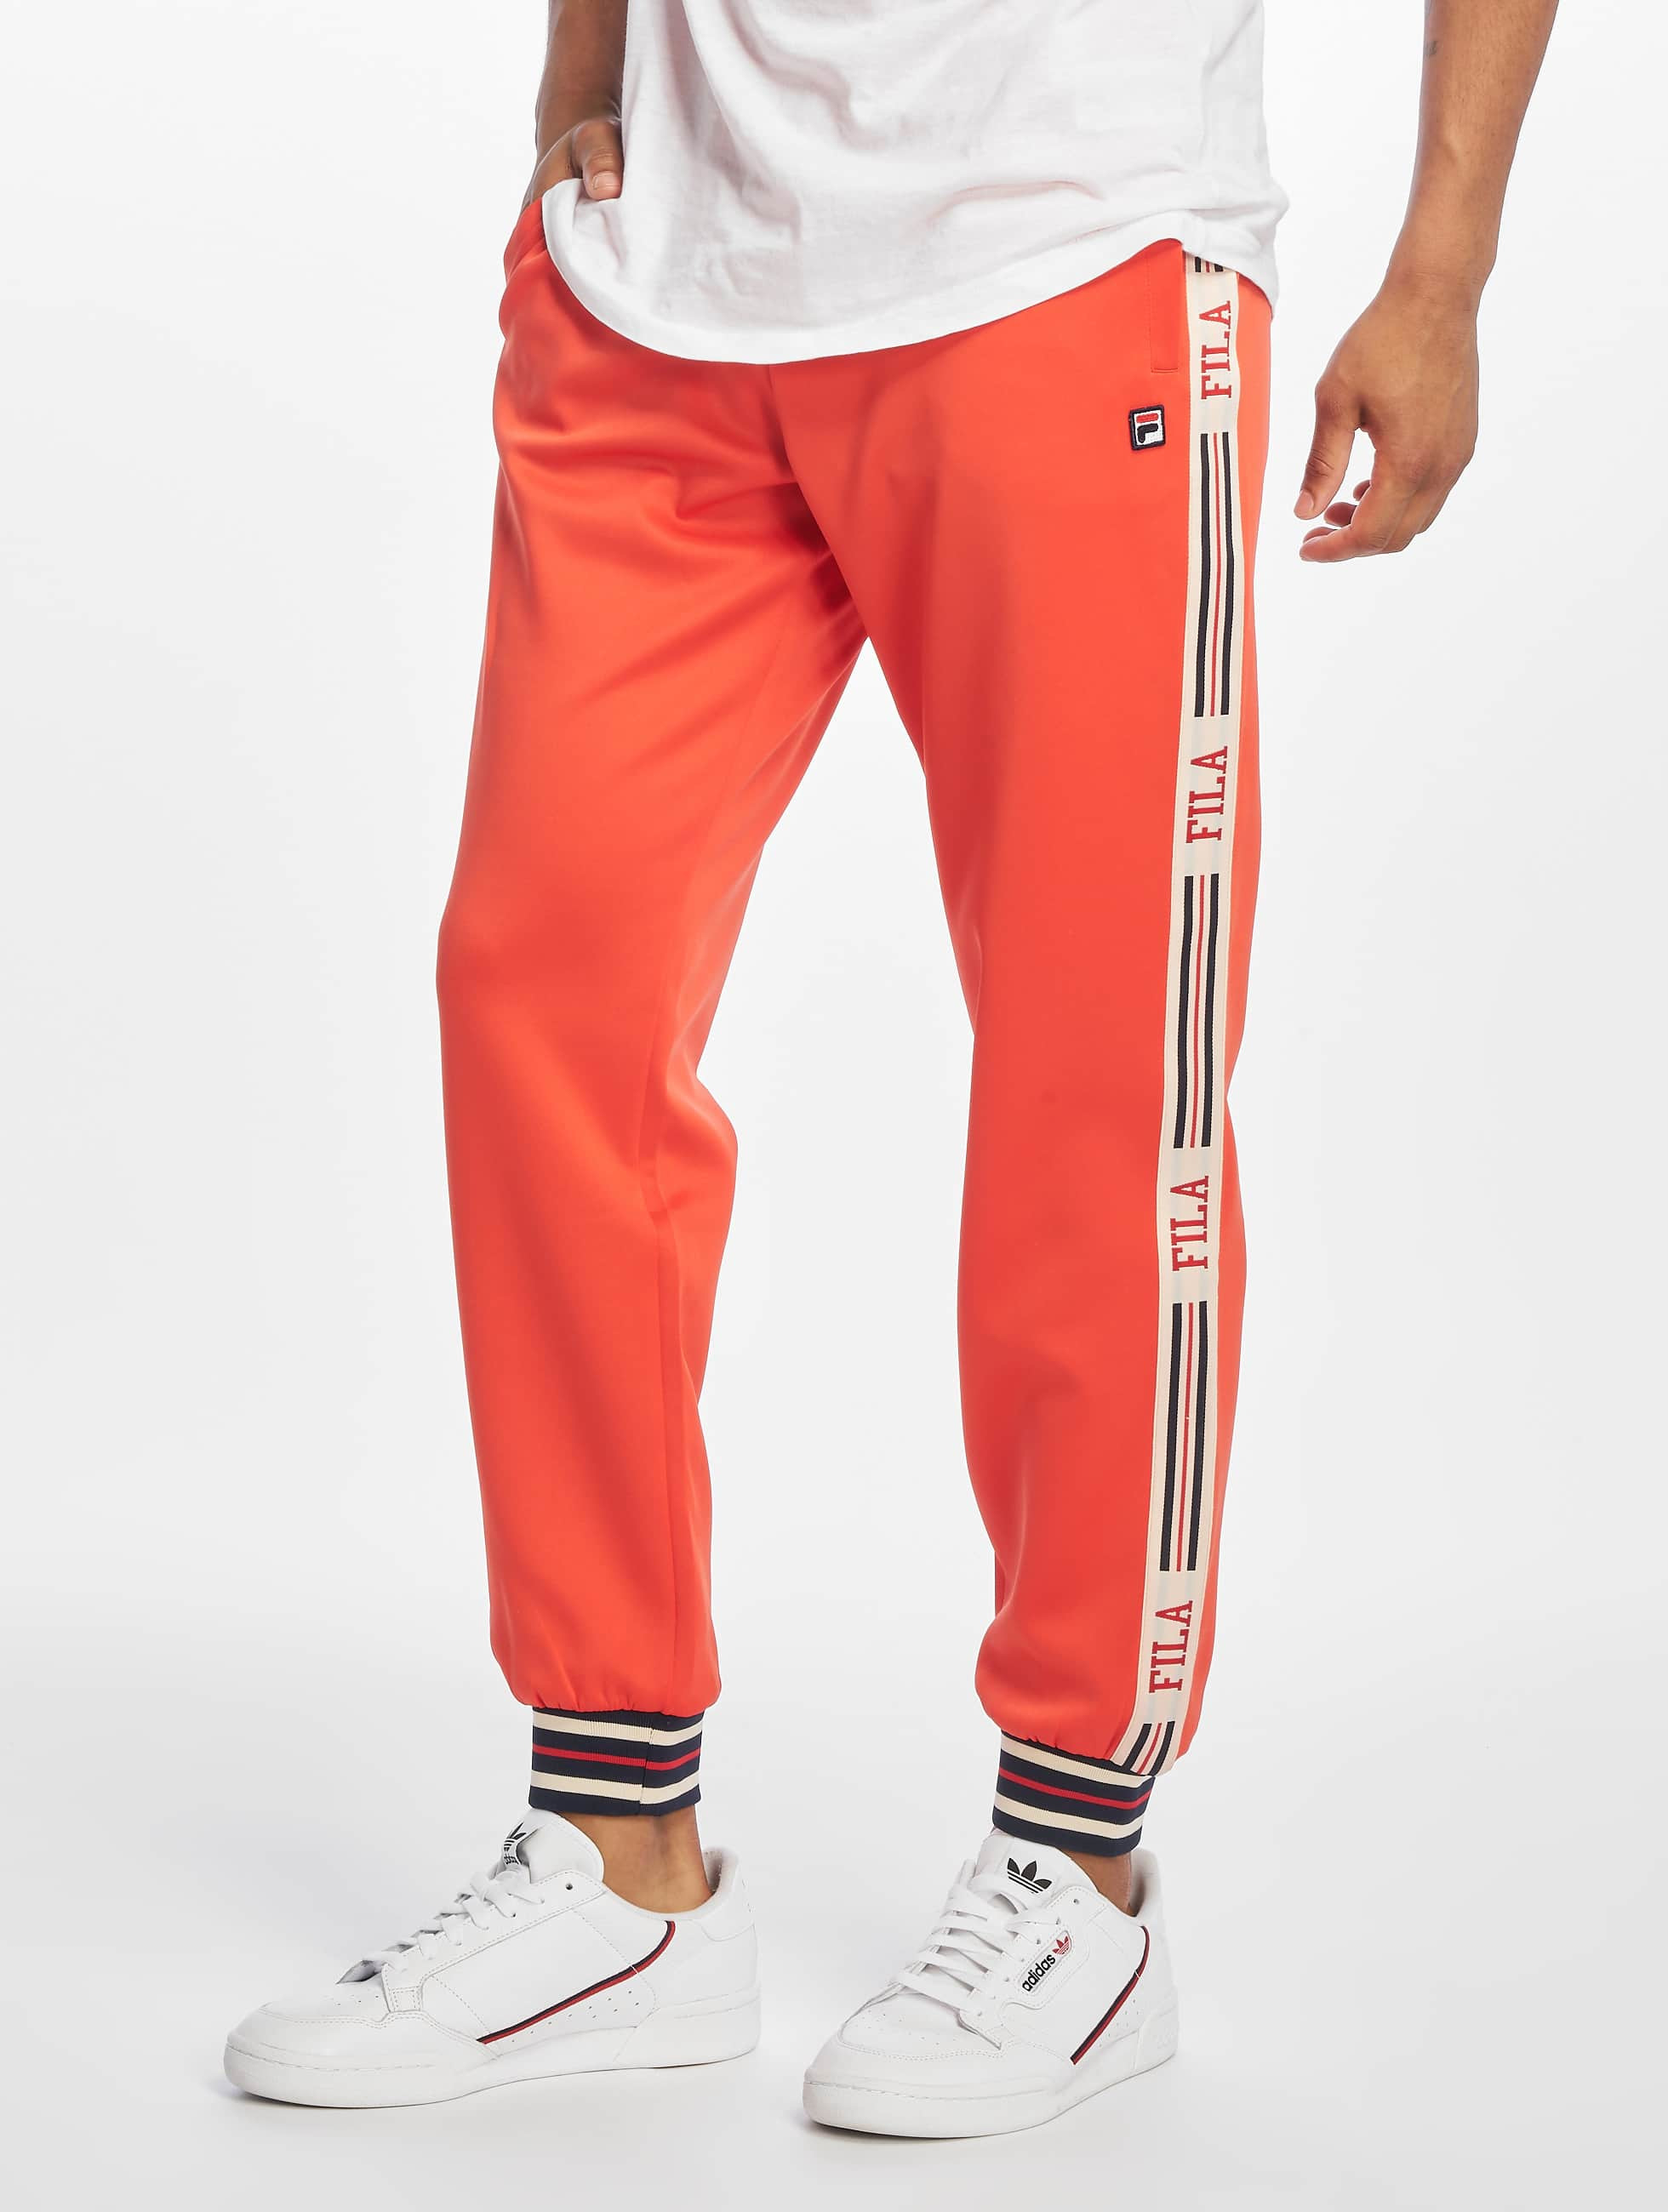 d1e930561c5 FILA broek / joggingbroek Urban Line Lou in oranje 633963